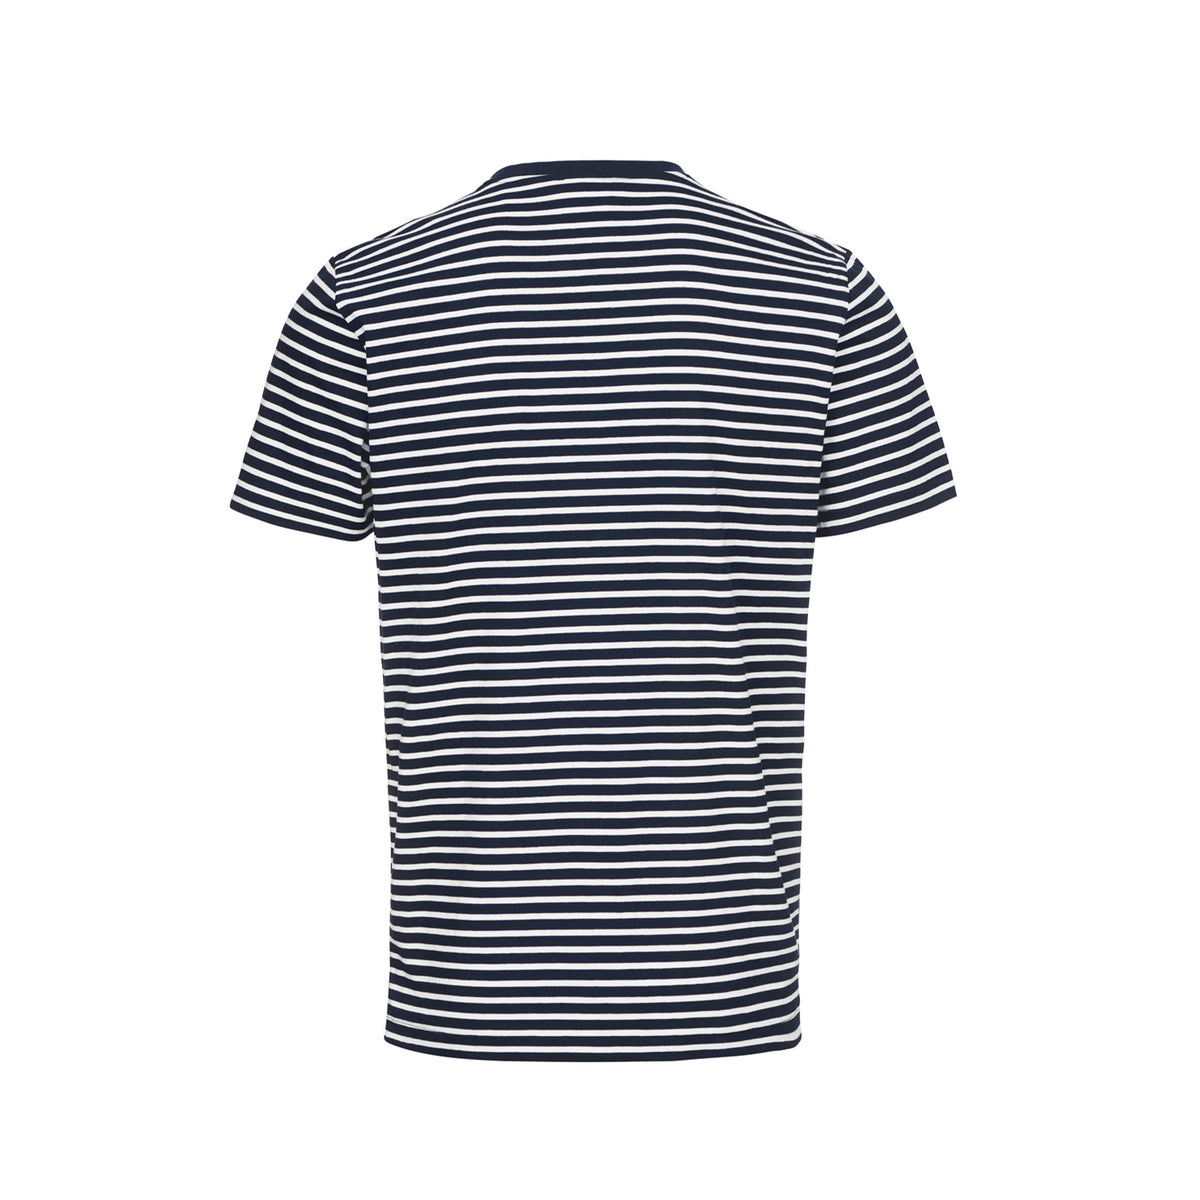 Breeze Malibu Stripe T-Shirt - background::white,variant::Bright White